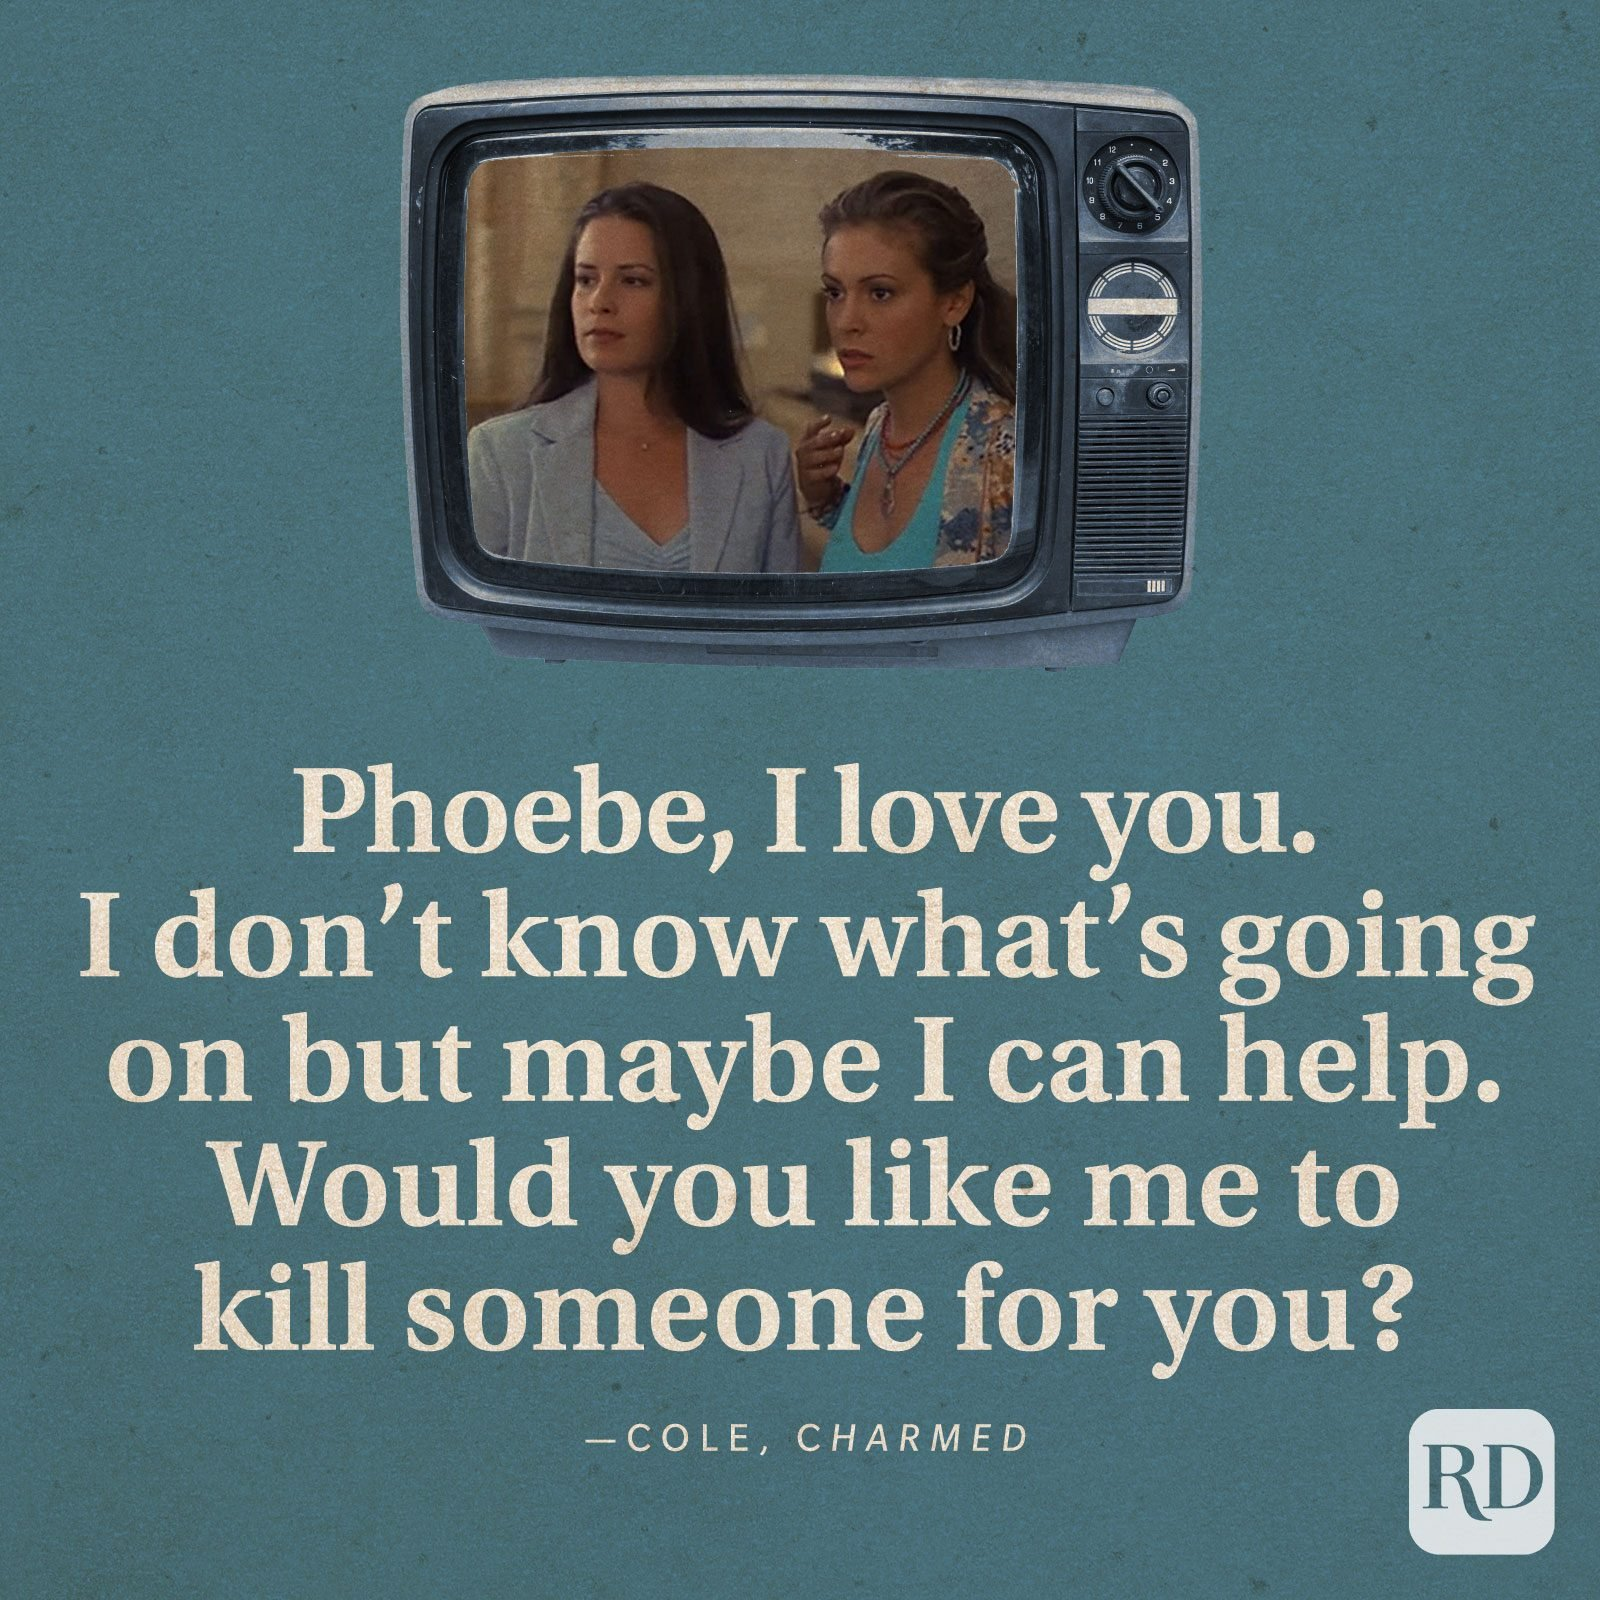 """""""Phoebe, I love you. I don't know what's going on but maybe I can help. Would you like me to kill someone for you?"""" -Cole in Charmed."""